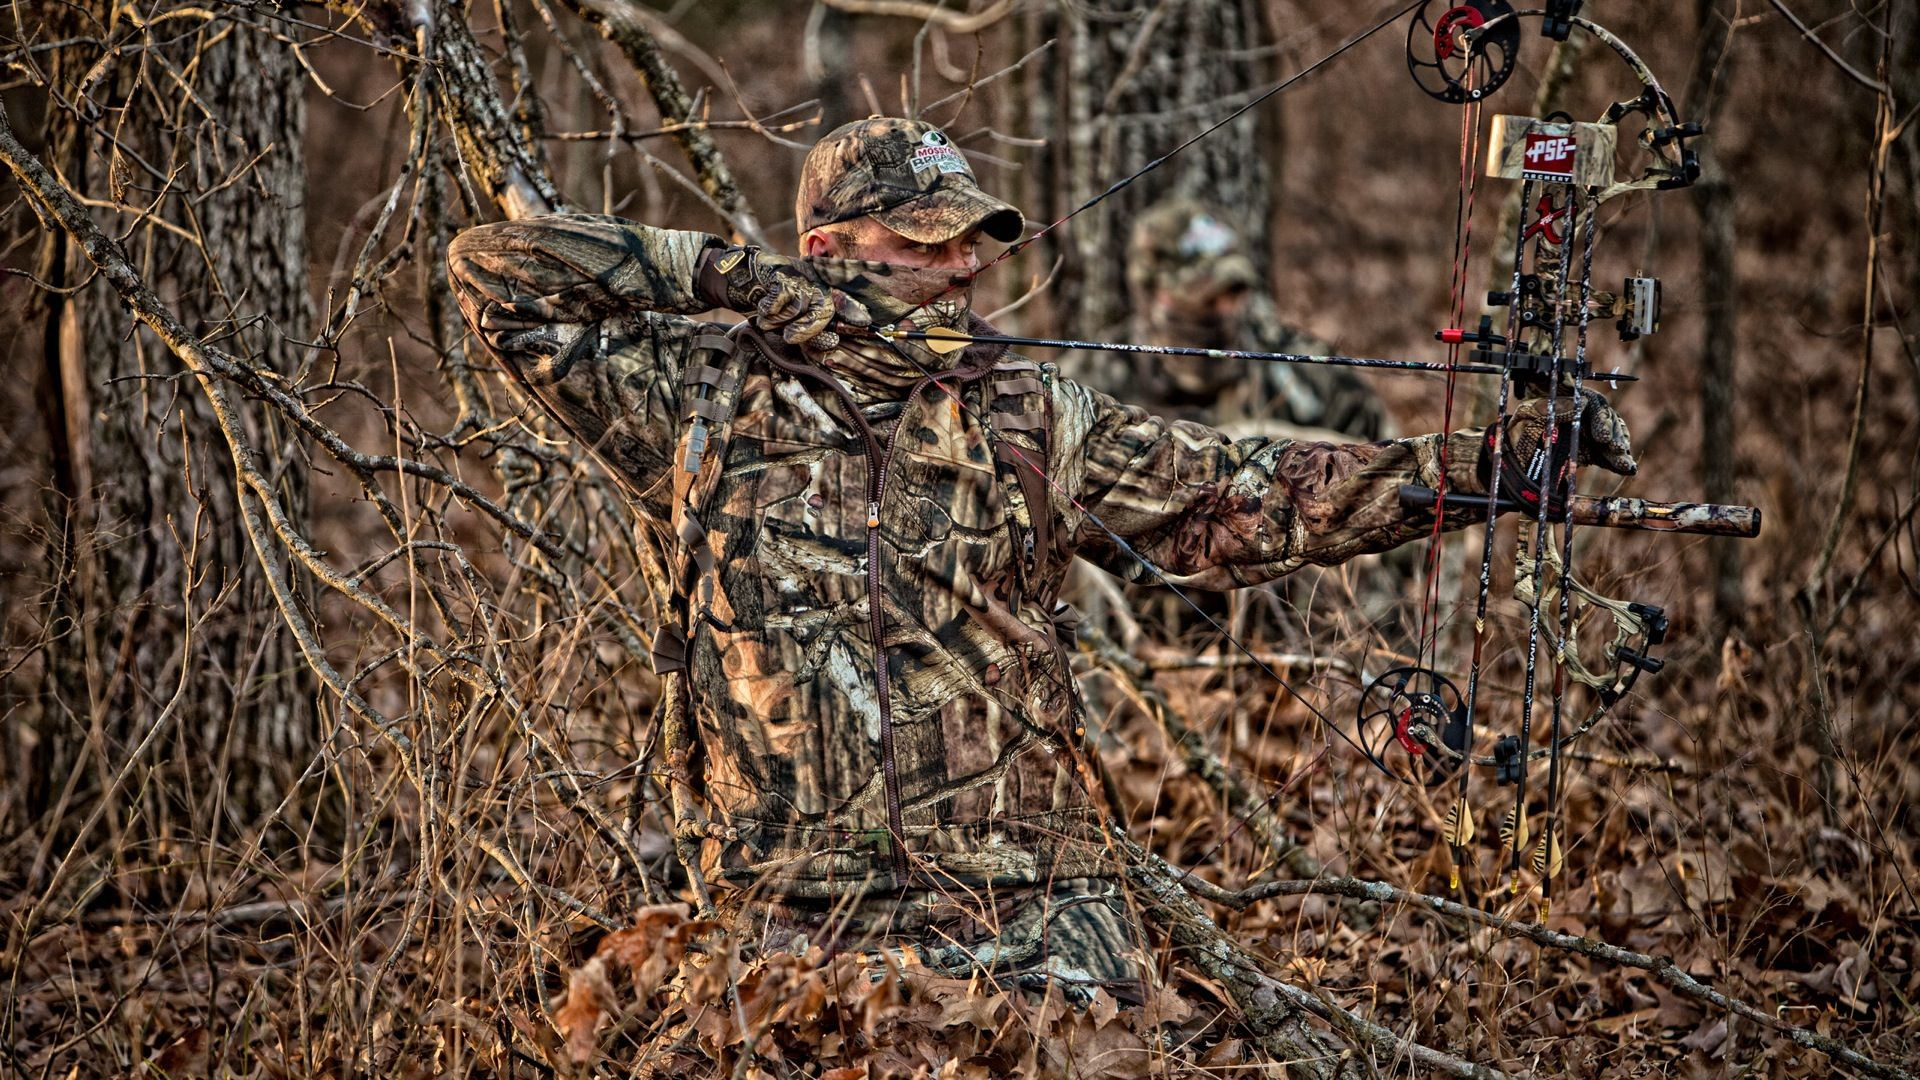 Pink Camo Wallpaper For Iphone 5 Hoyt Bow Hunting Wallpaper 64 Images